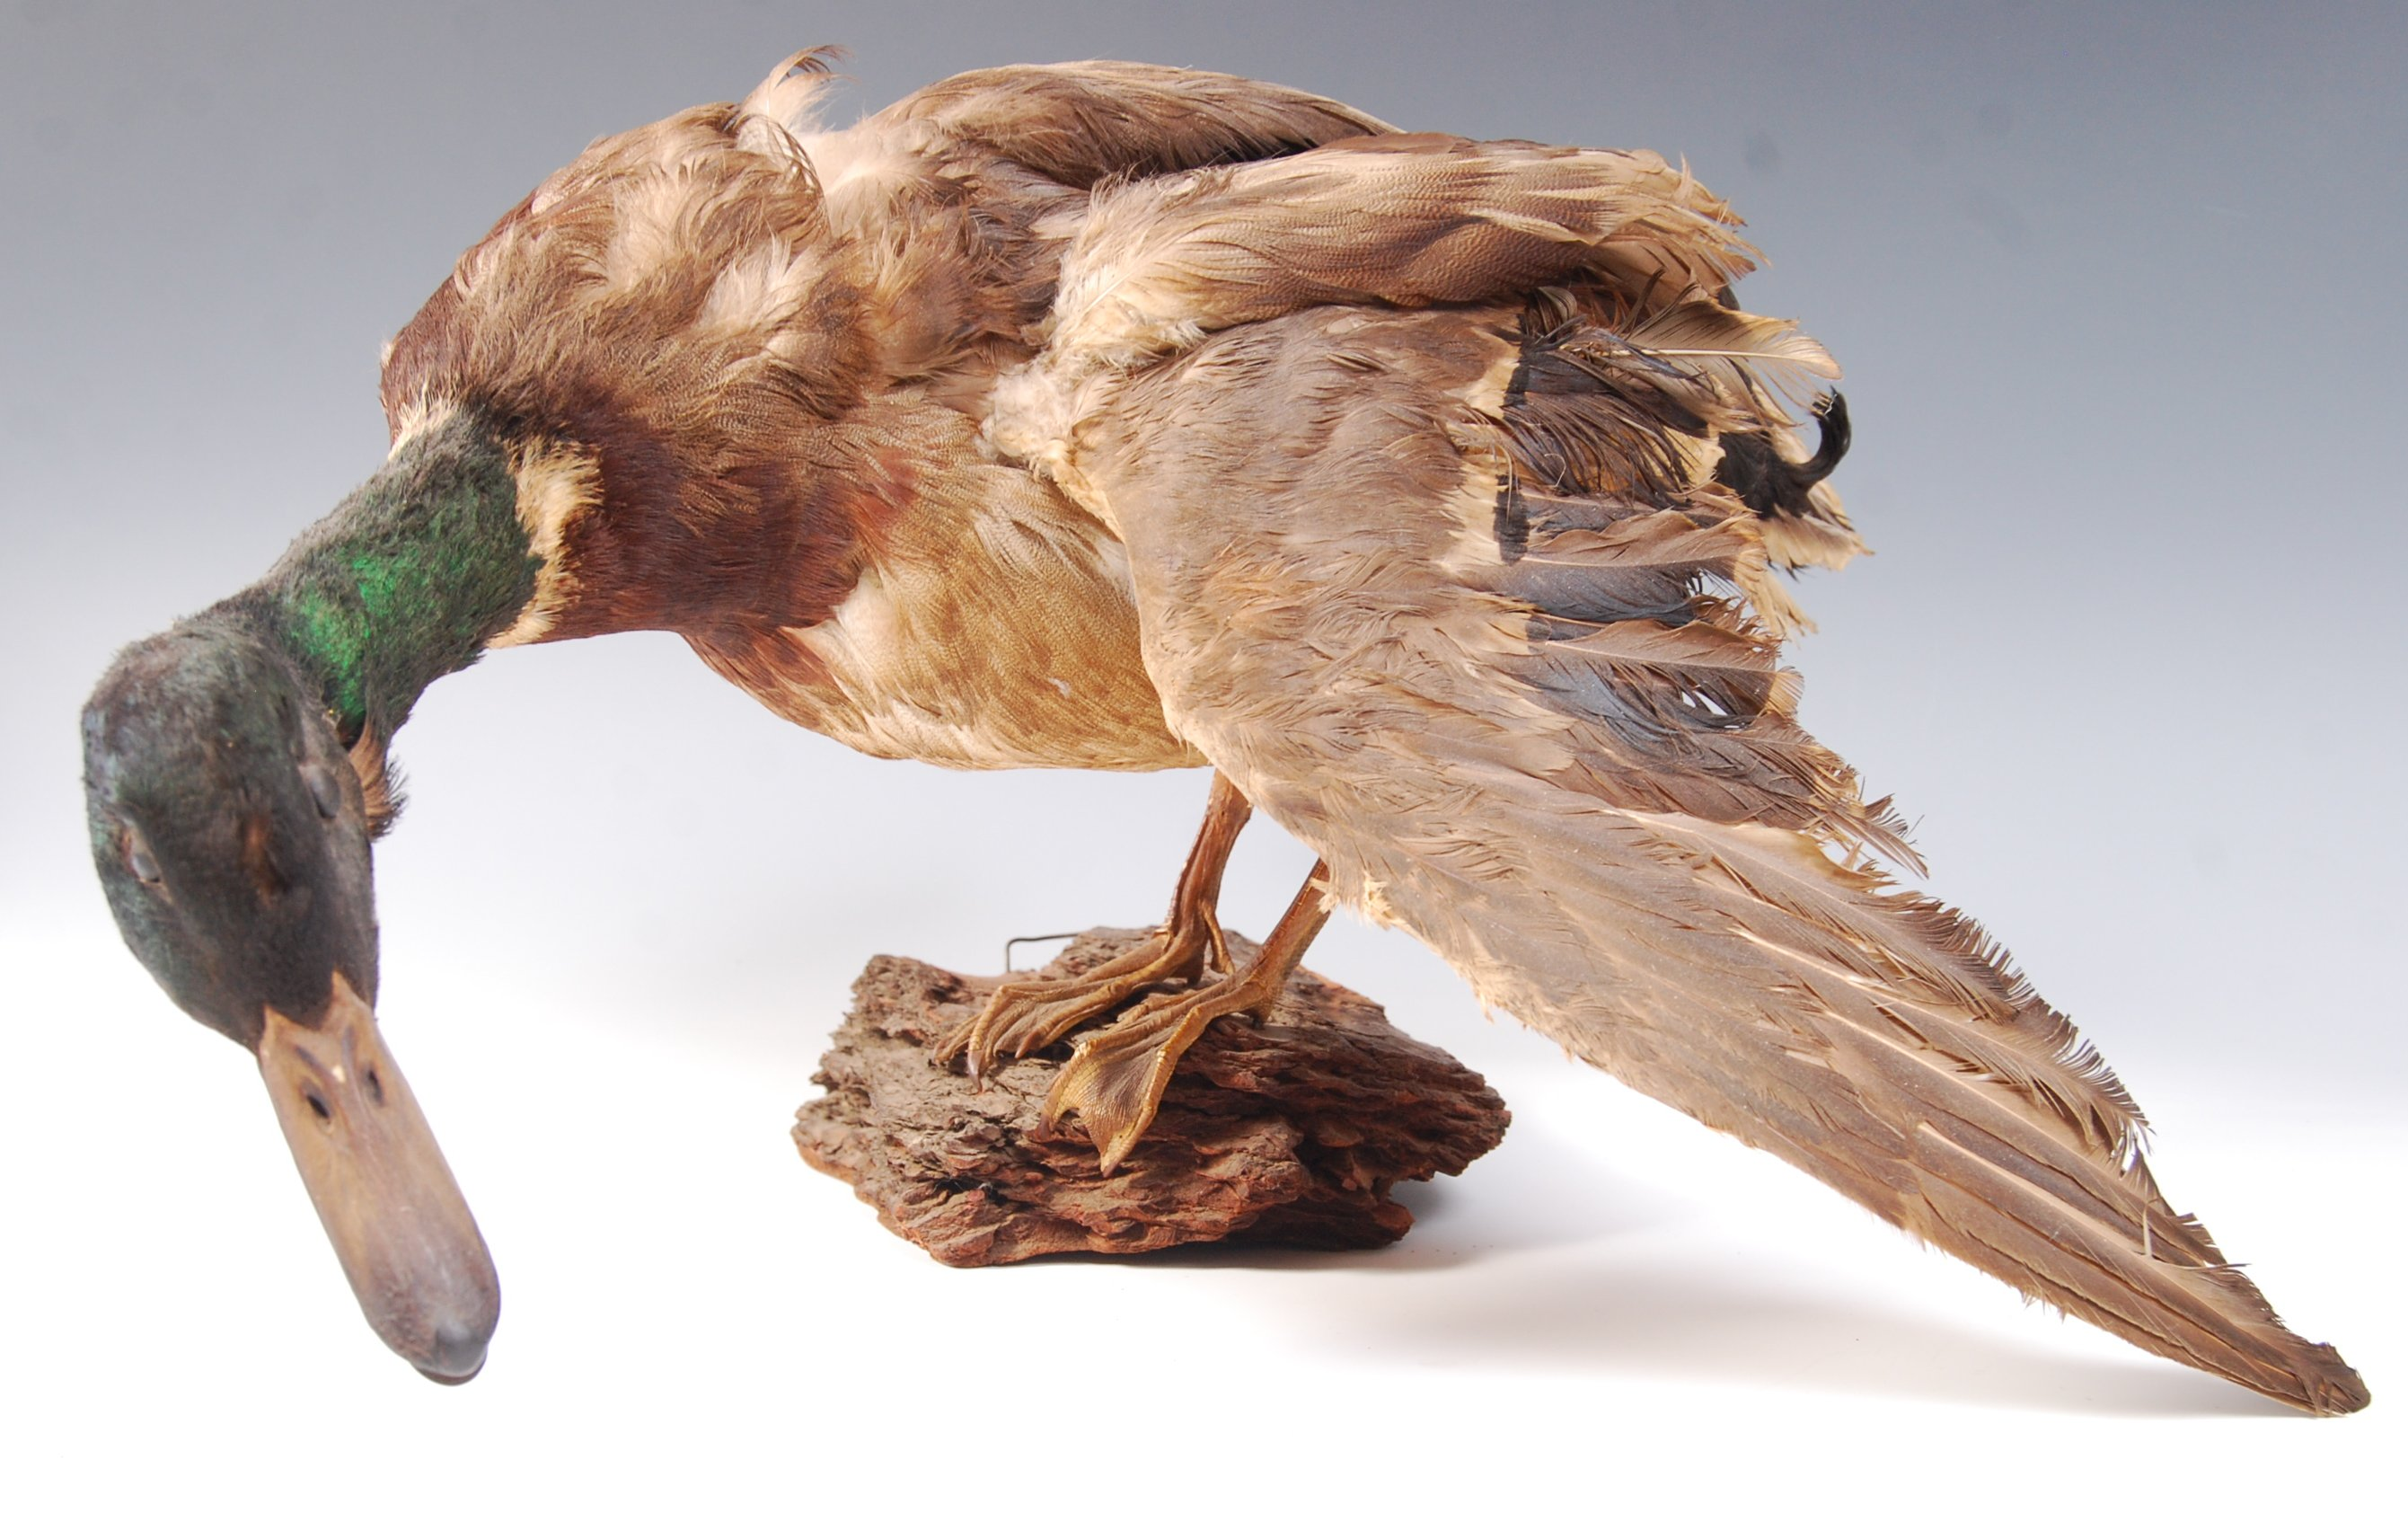 Lot 57 - ANTIQUE VINTAGE TAXIDERMY MALLARD DUCK ON WOODEN NATURALISTIC BASE